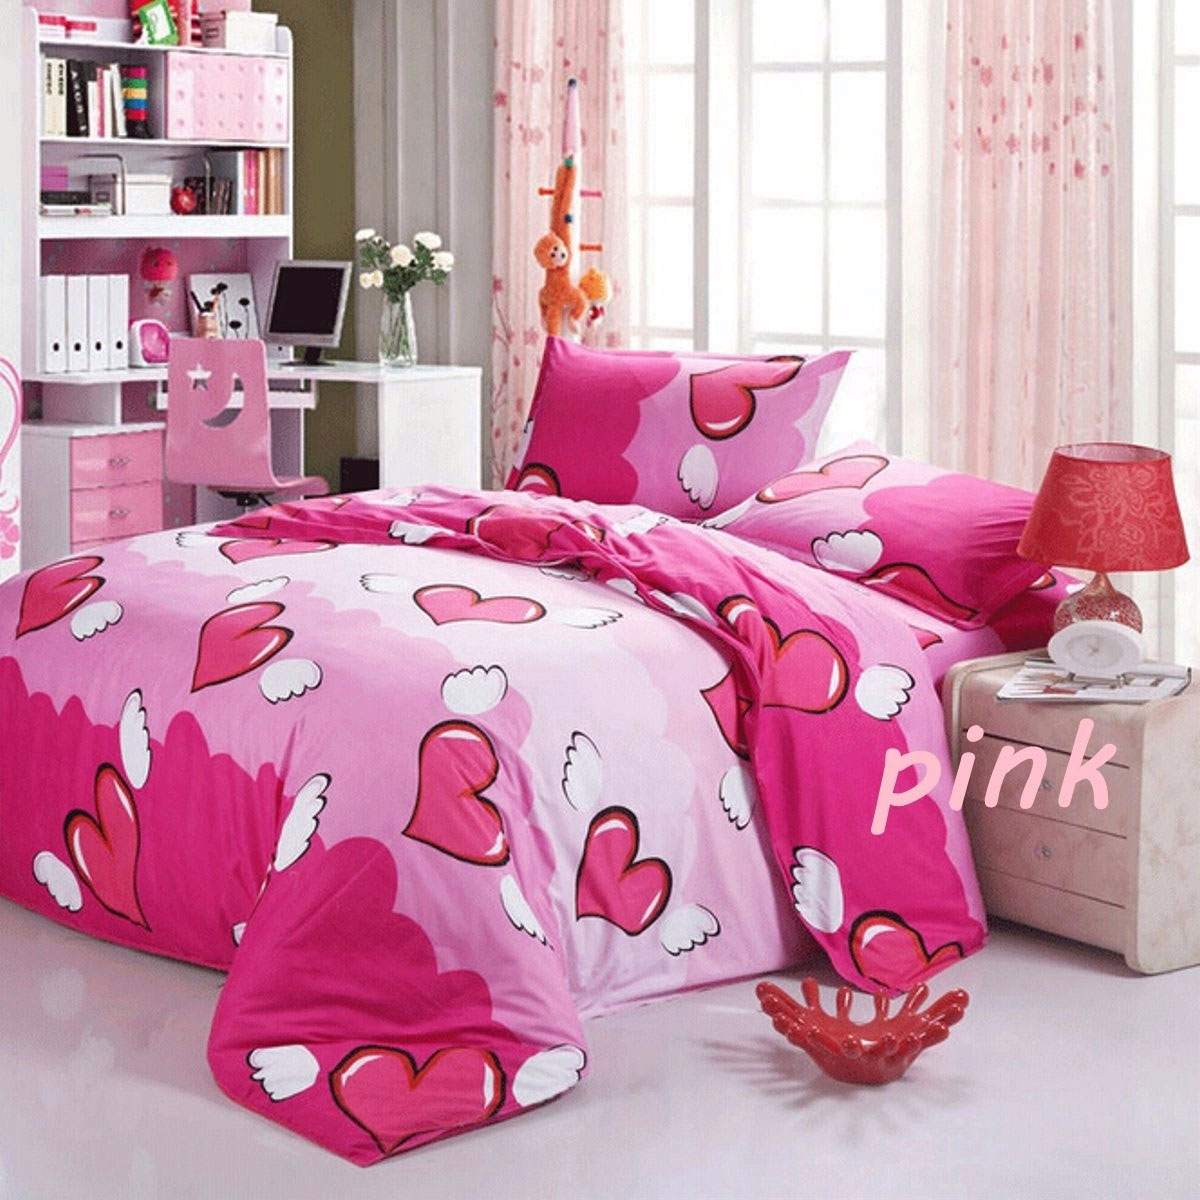 Find a great selection of duvet cover sets and matching pillow shams at kumau.ml Shop by bed size, color, brand and more. Totally free shipping and returns.